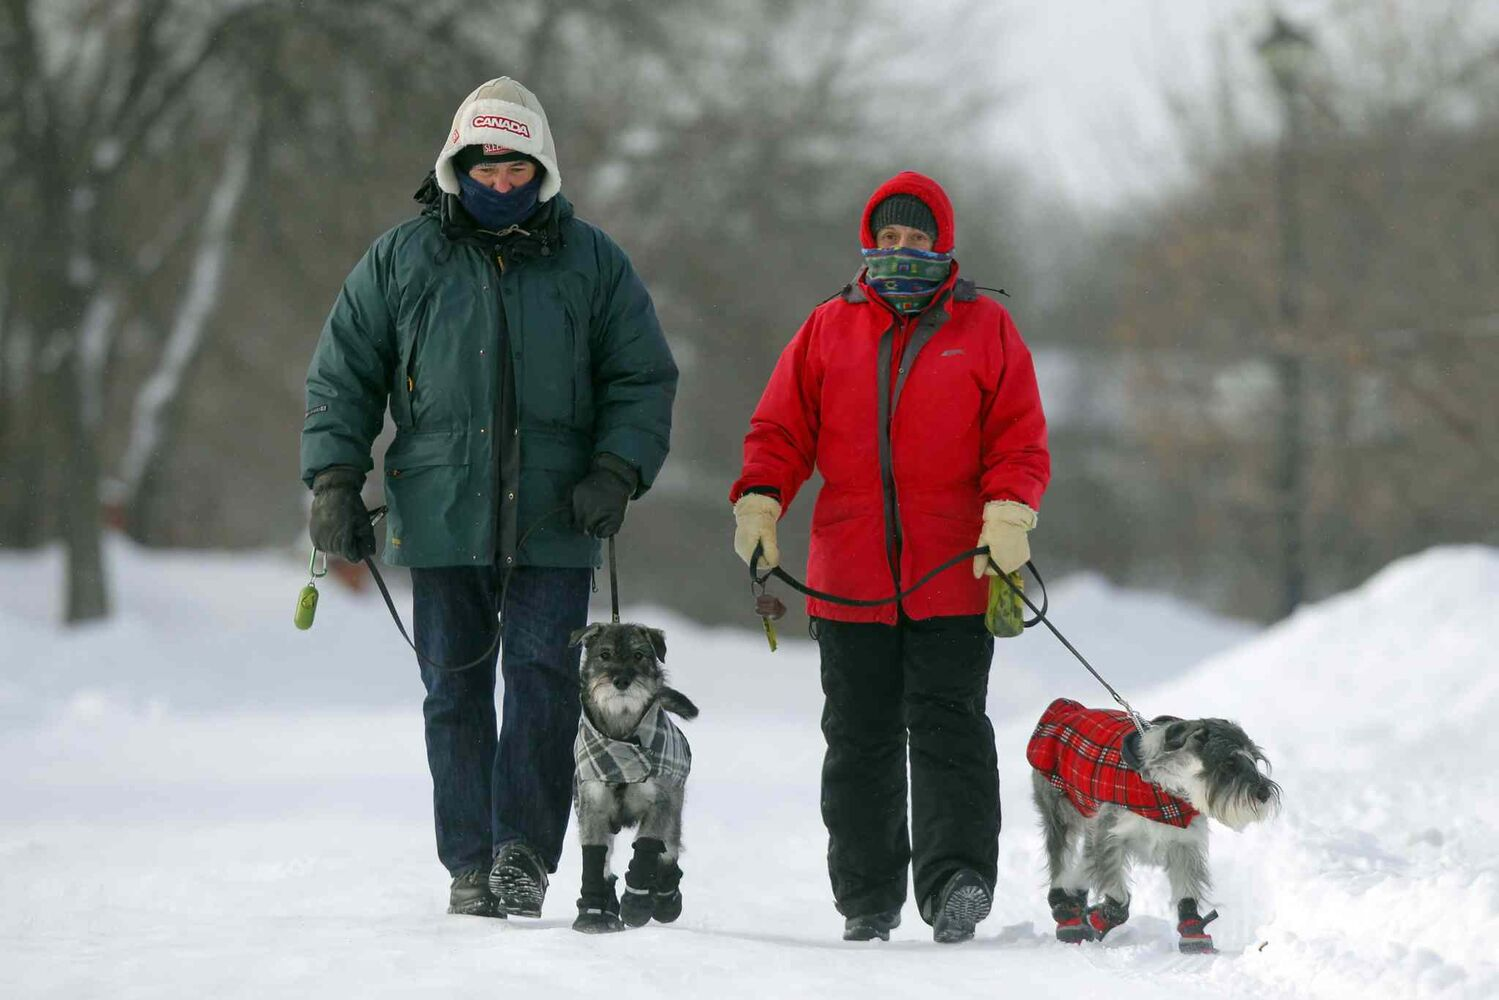 Greg Arason and his wife Margaret walk their dogs Eli and Quito(in red) in Southdale Monday. The cold temperatures didn't stop the couple from getting some exercise. (BORIS MINKEVICH / WINNIPEG FREE PRESS)